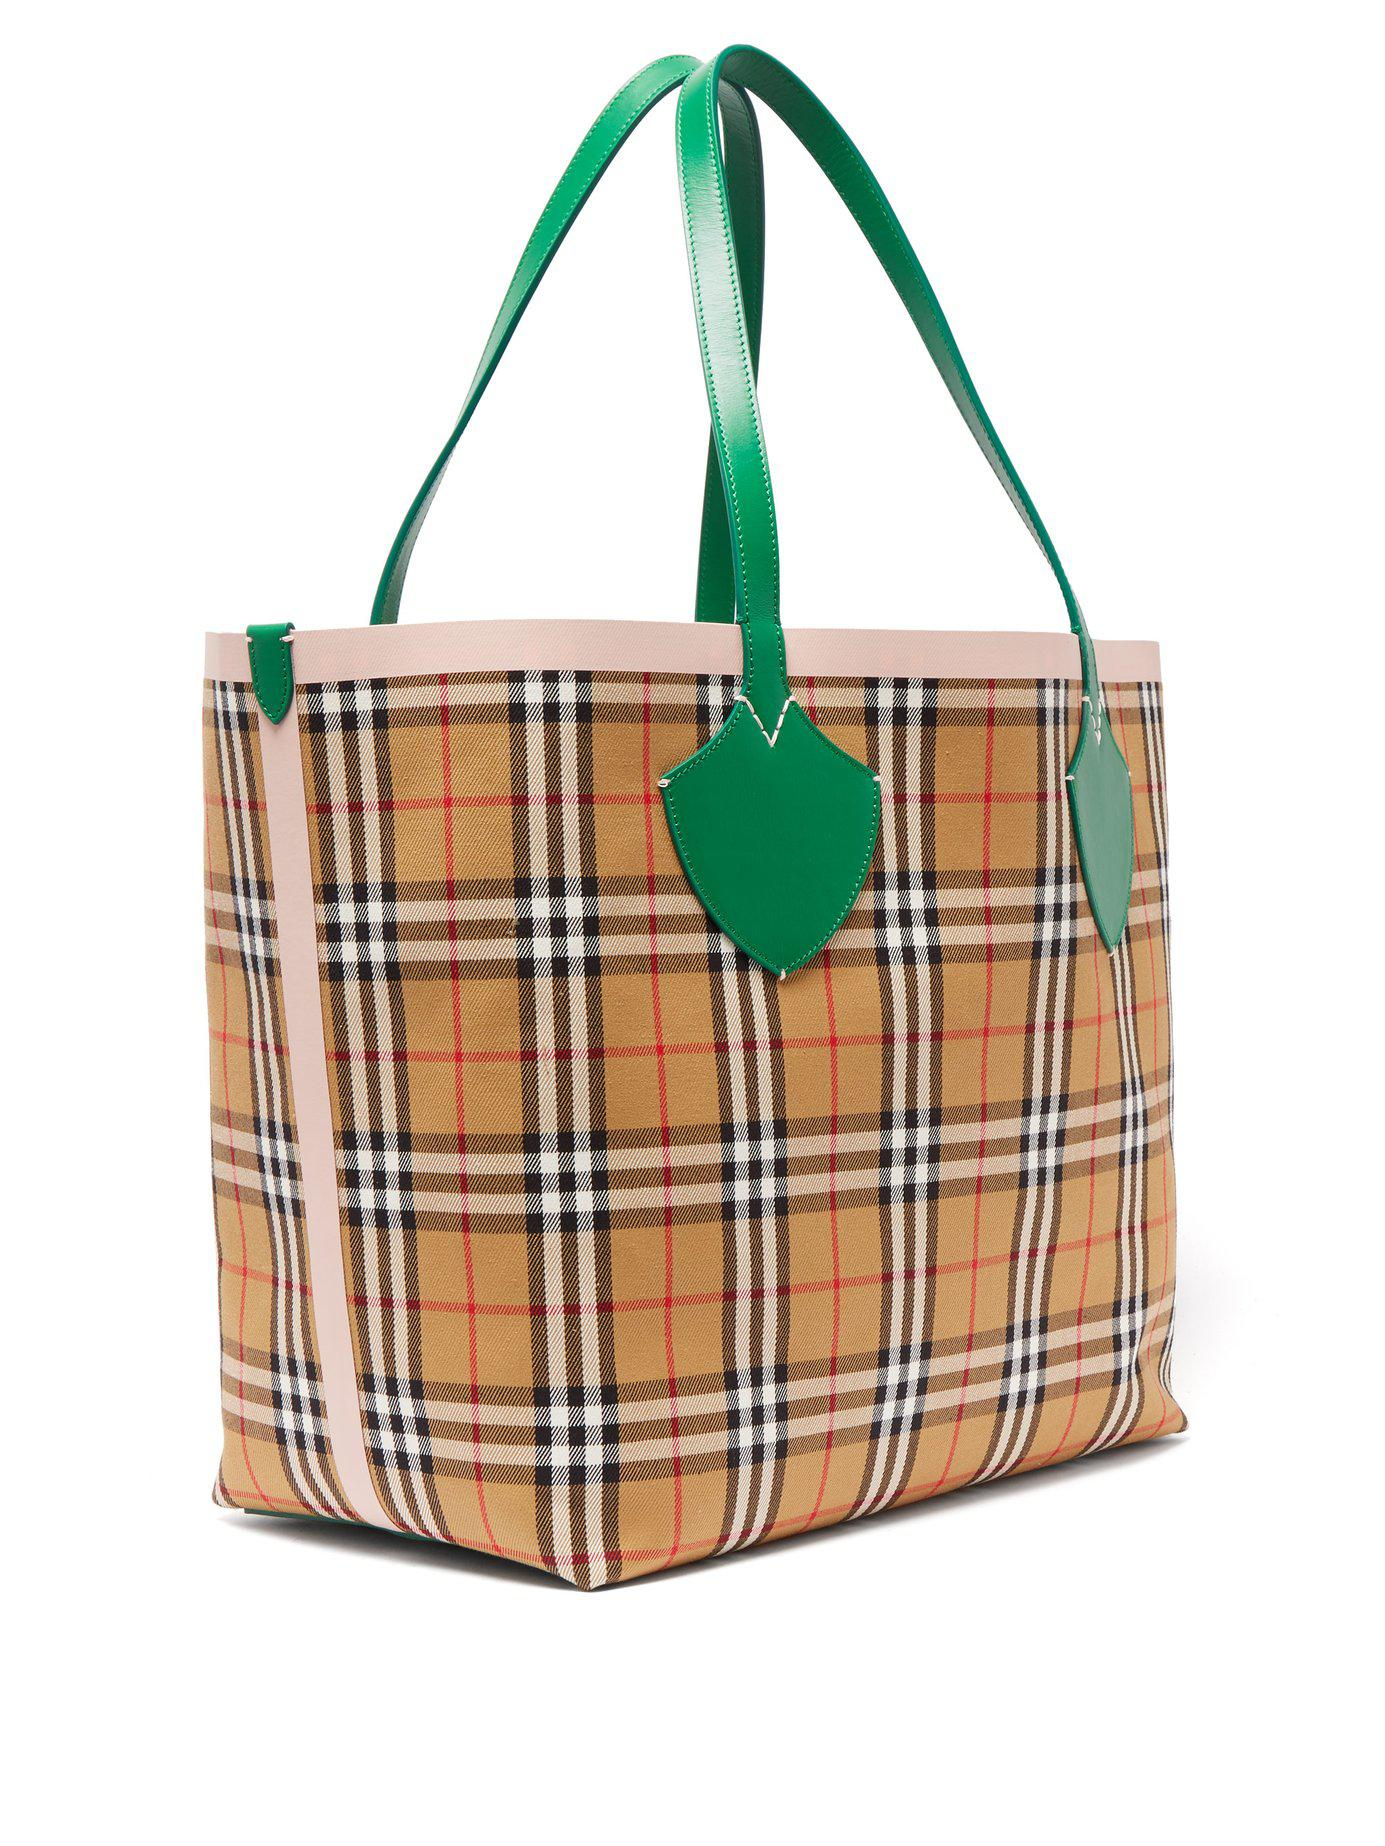 0be2f64f202e Lyst - Burberry The Giant Medium Reversible Cotton Tote Bag